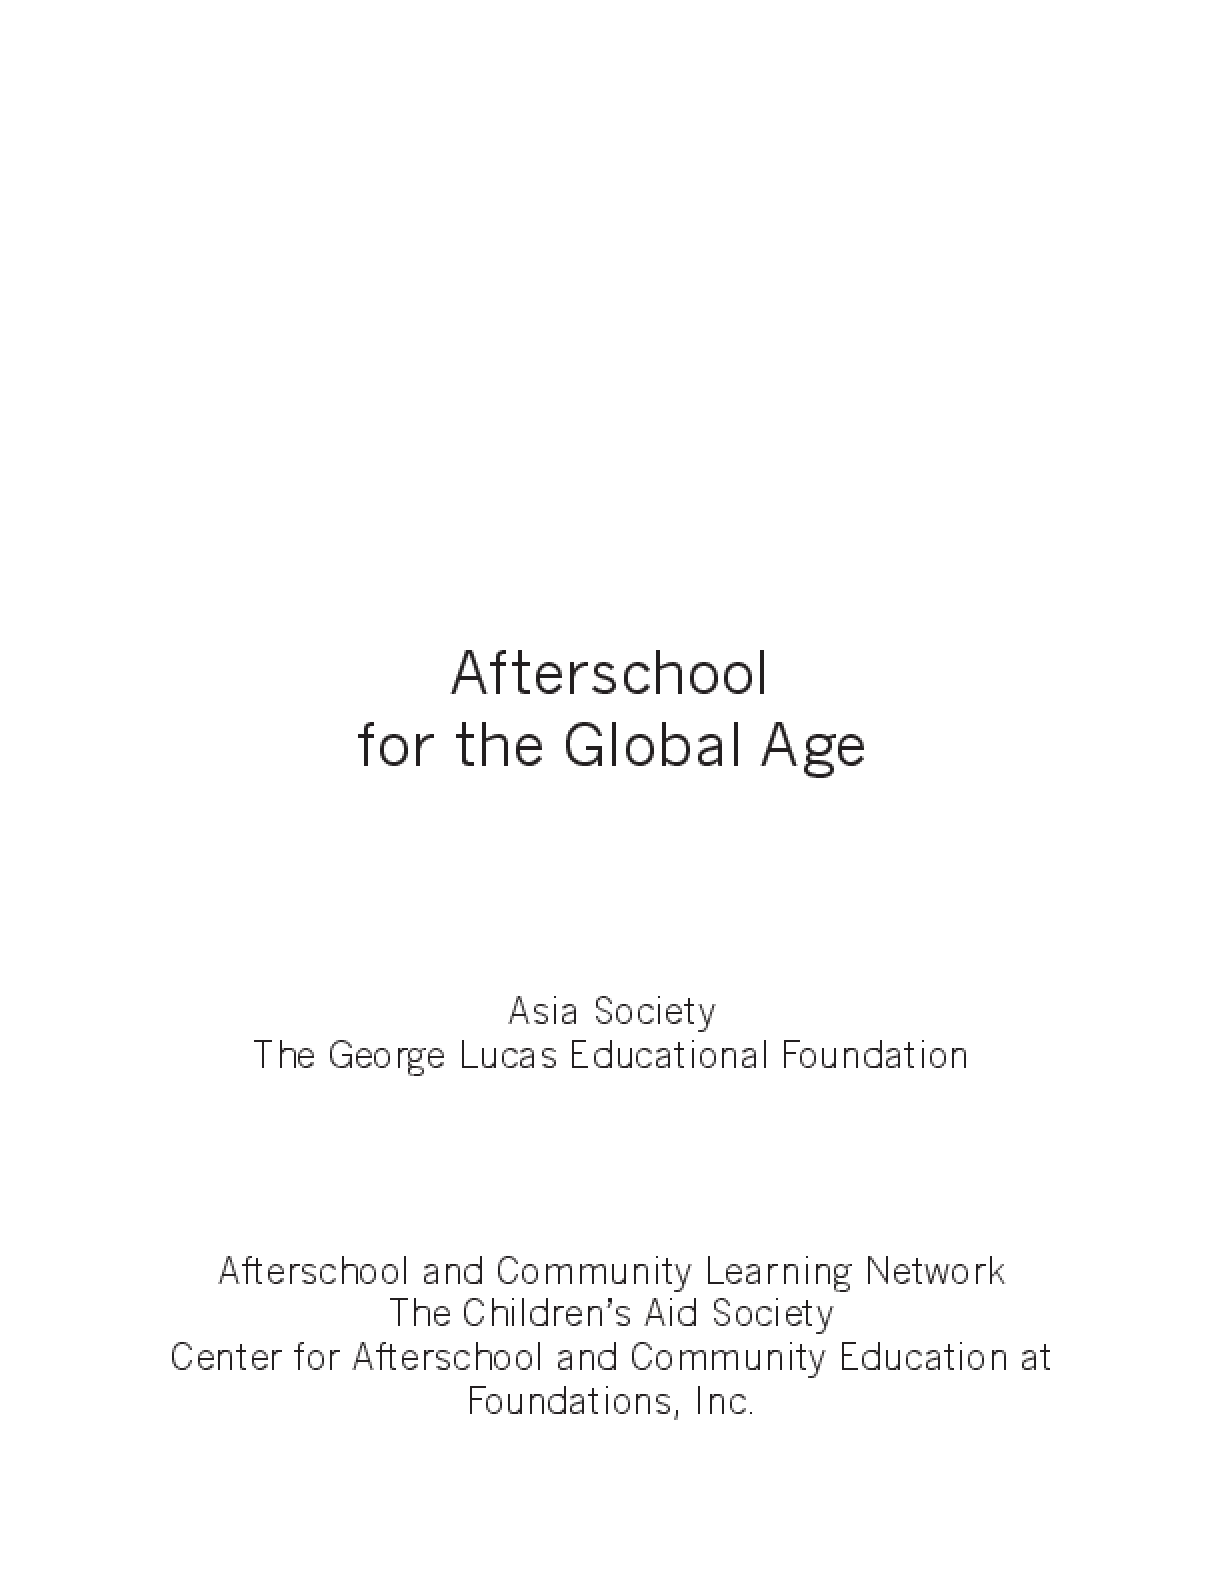 Afterschool for the Global Age